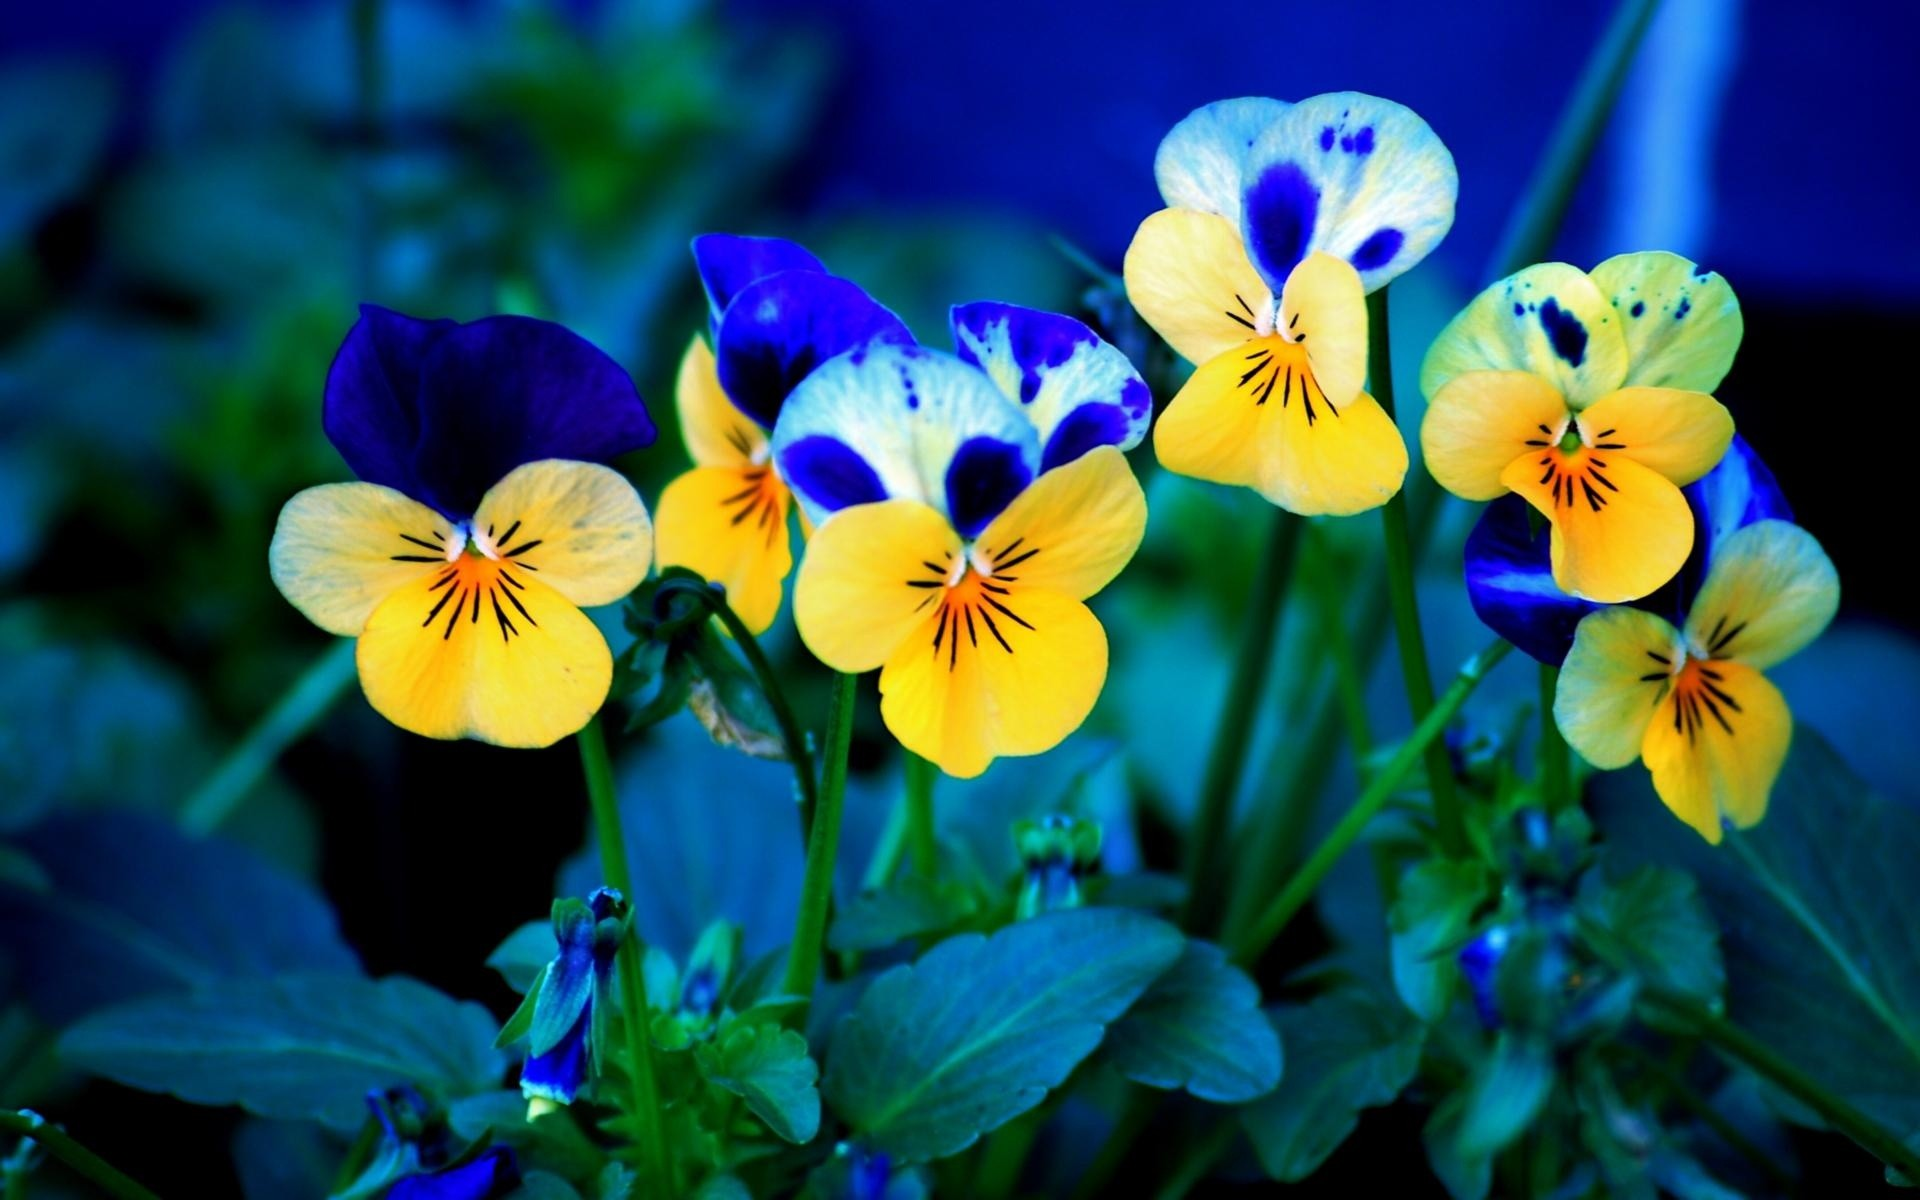 Spring Flowers wallpapers Spring Flowers stock photos 1920x1200